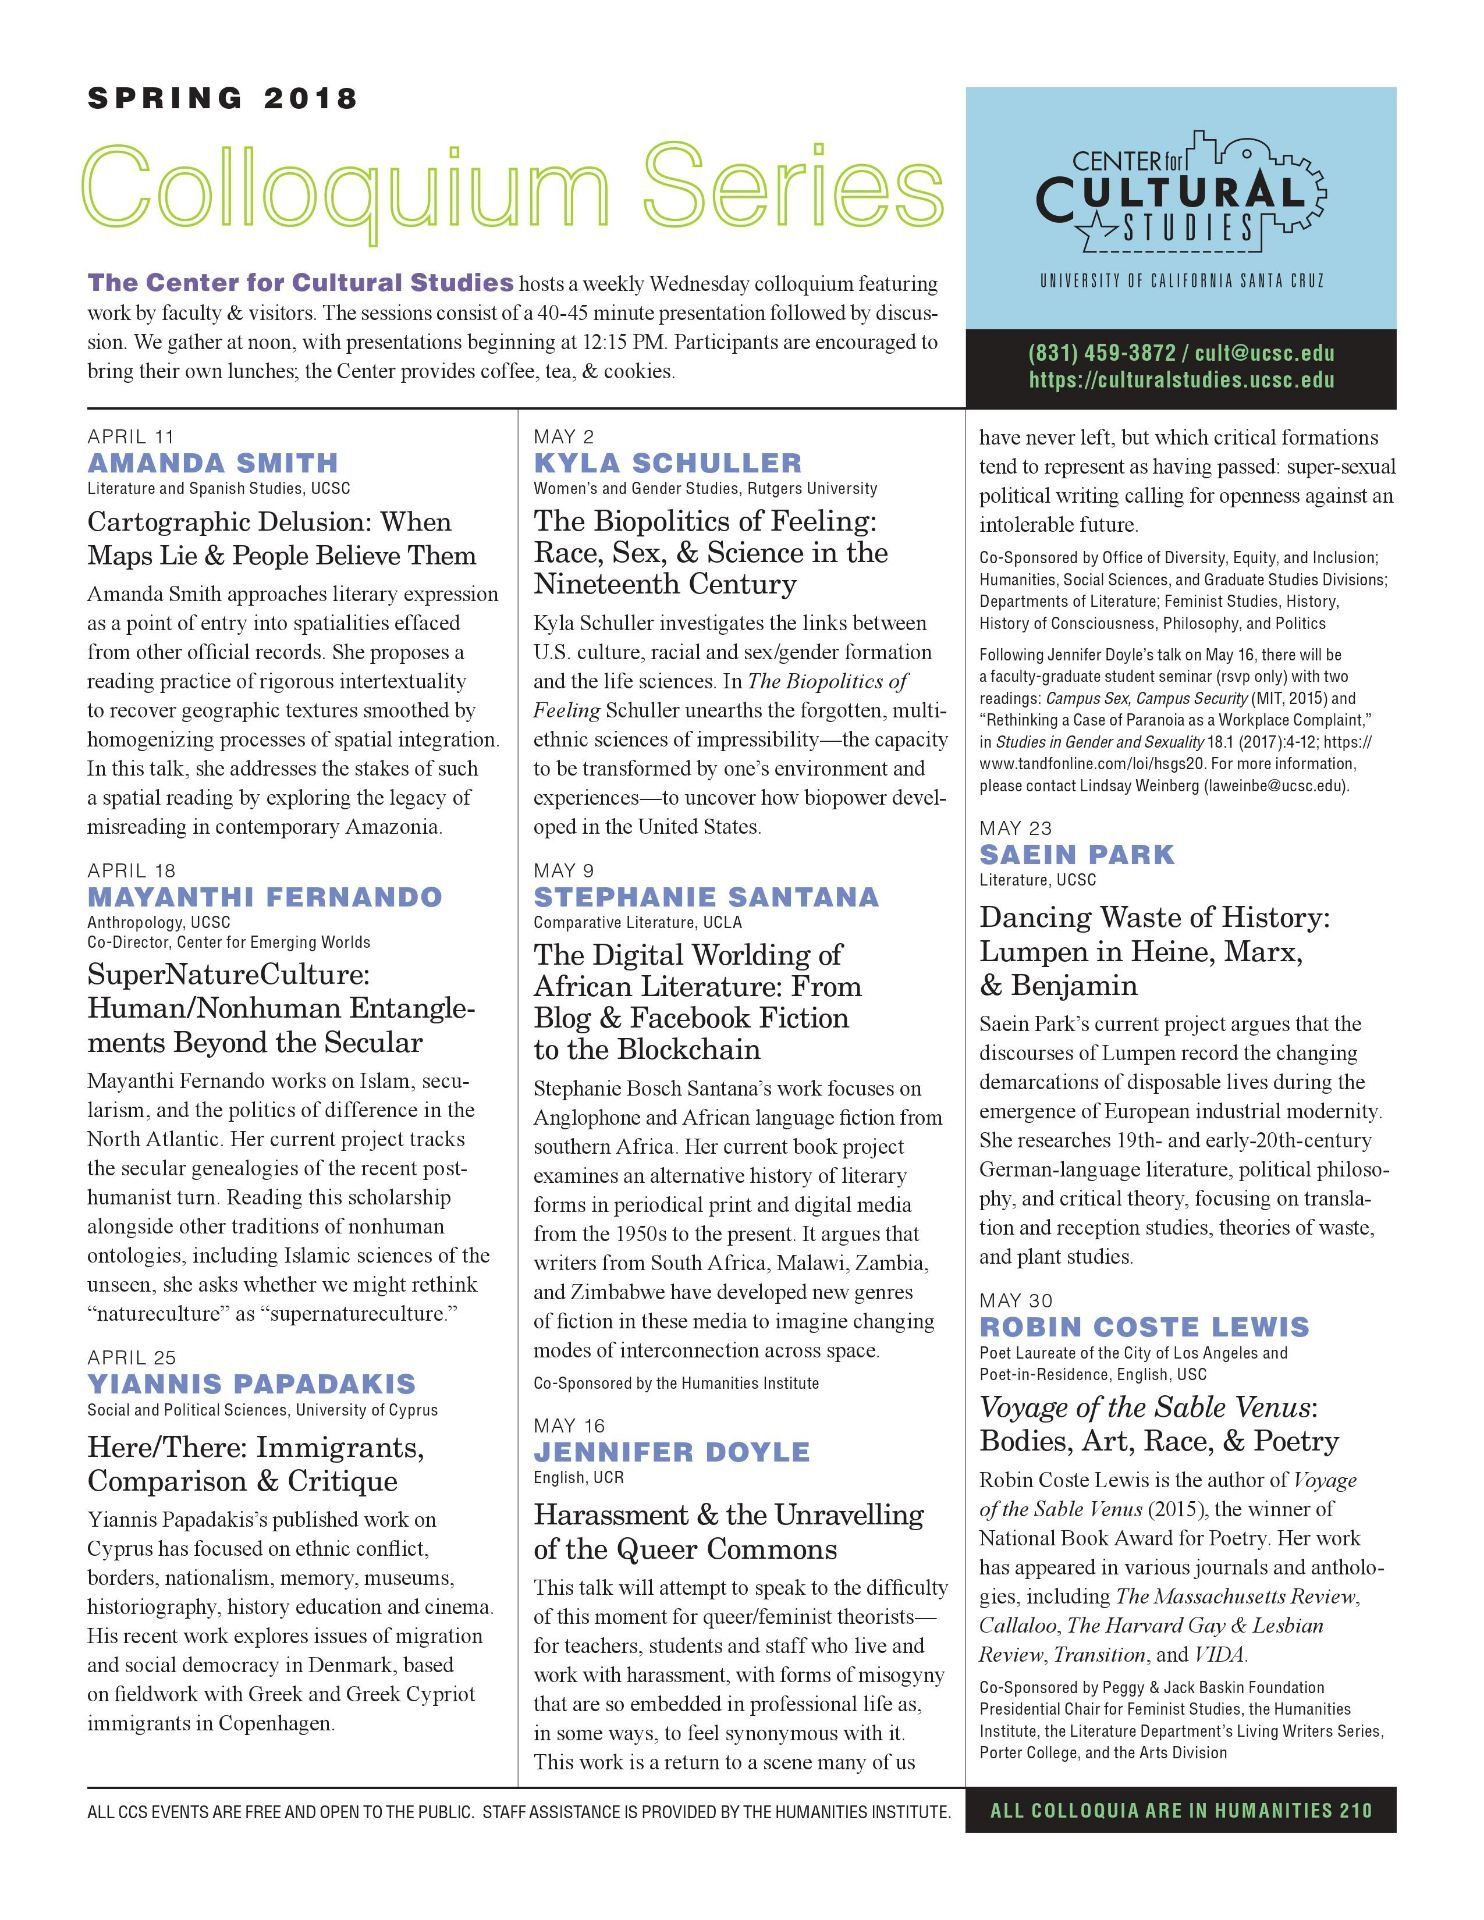 The Spring Newsletter is shown